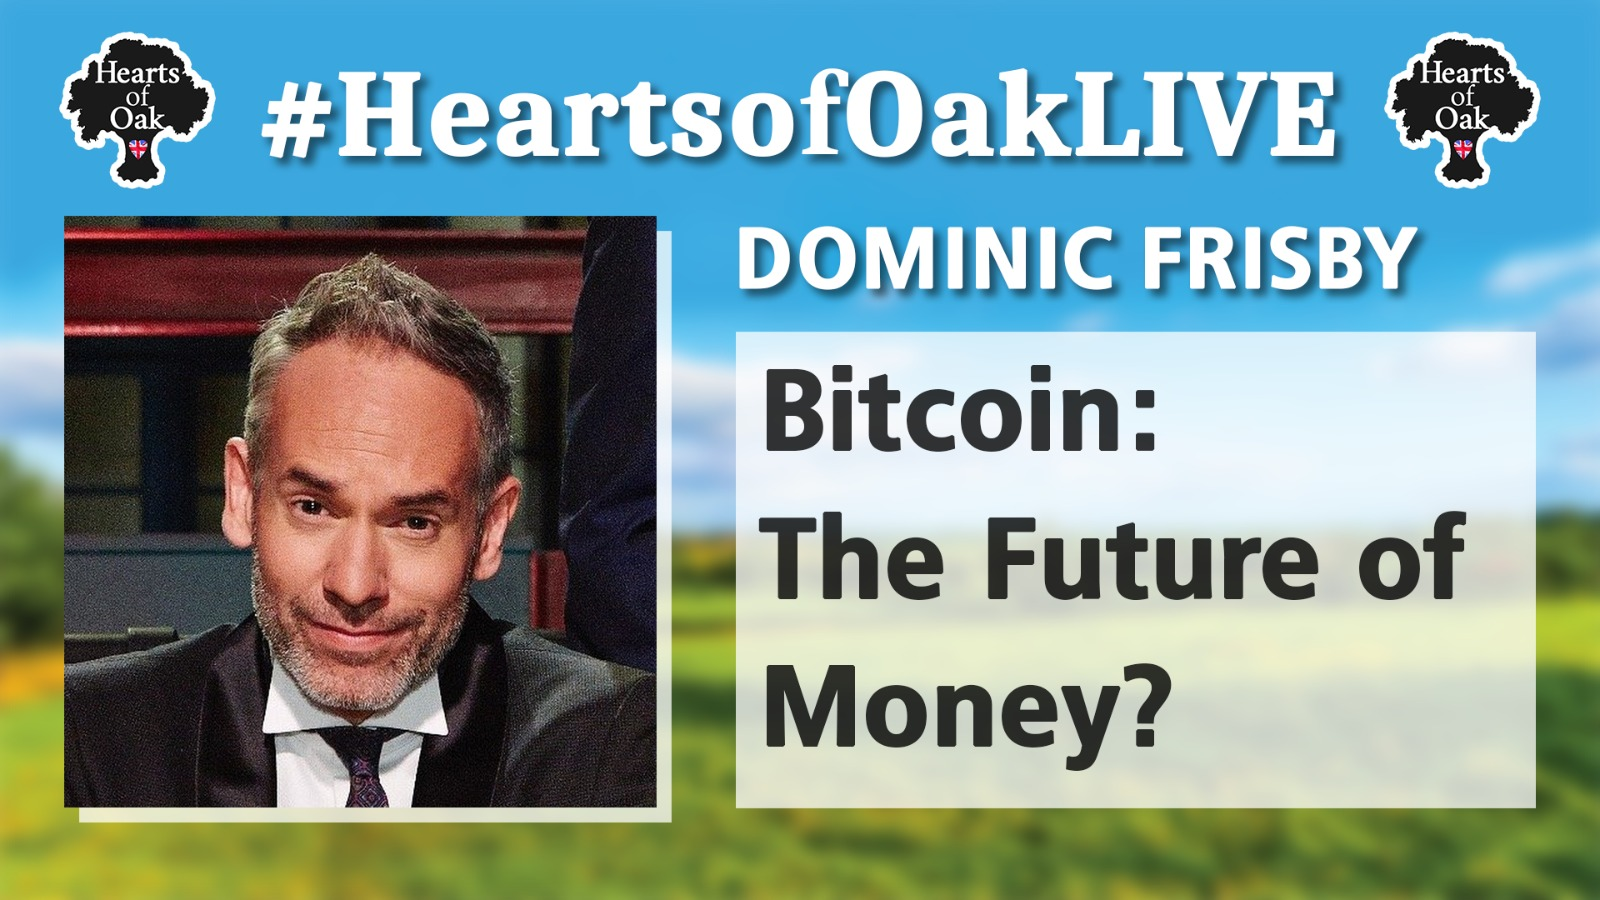 Dominic Frisby: Bitcoin, the Future of Money?